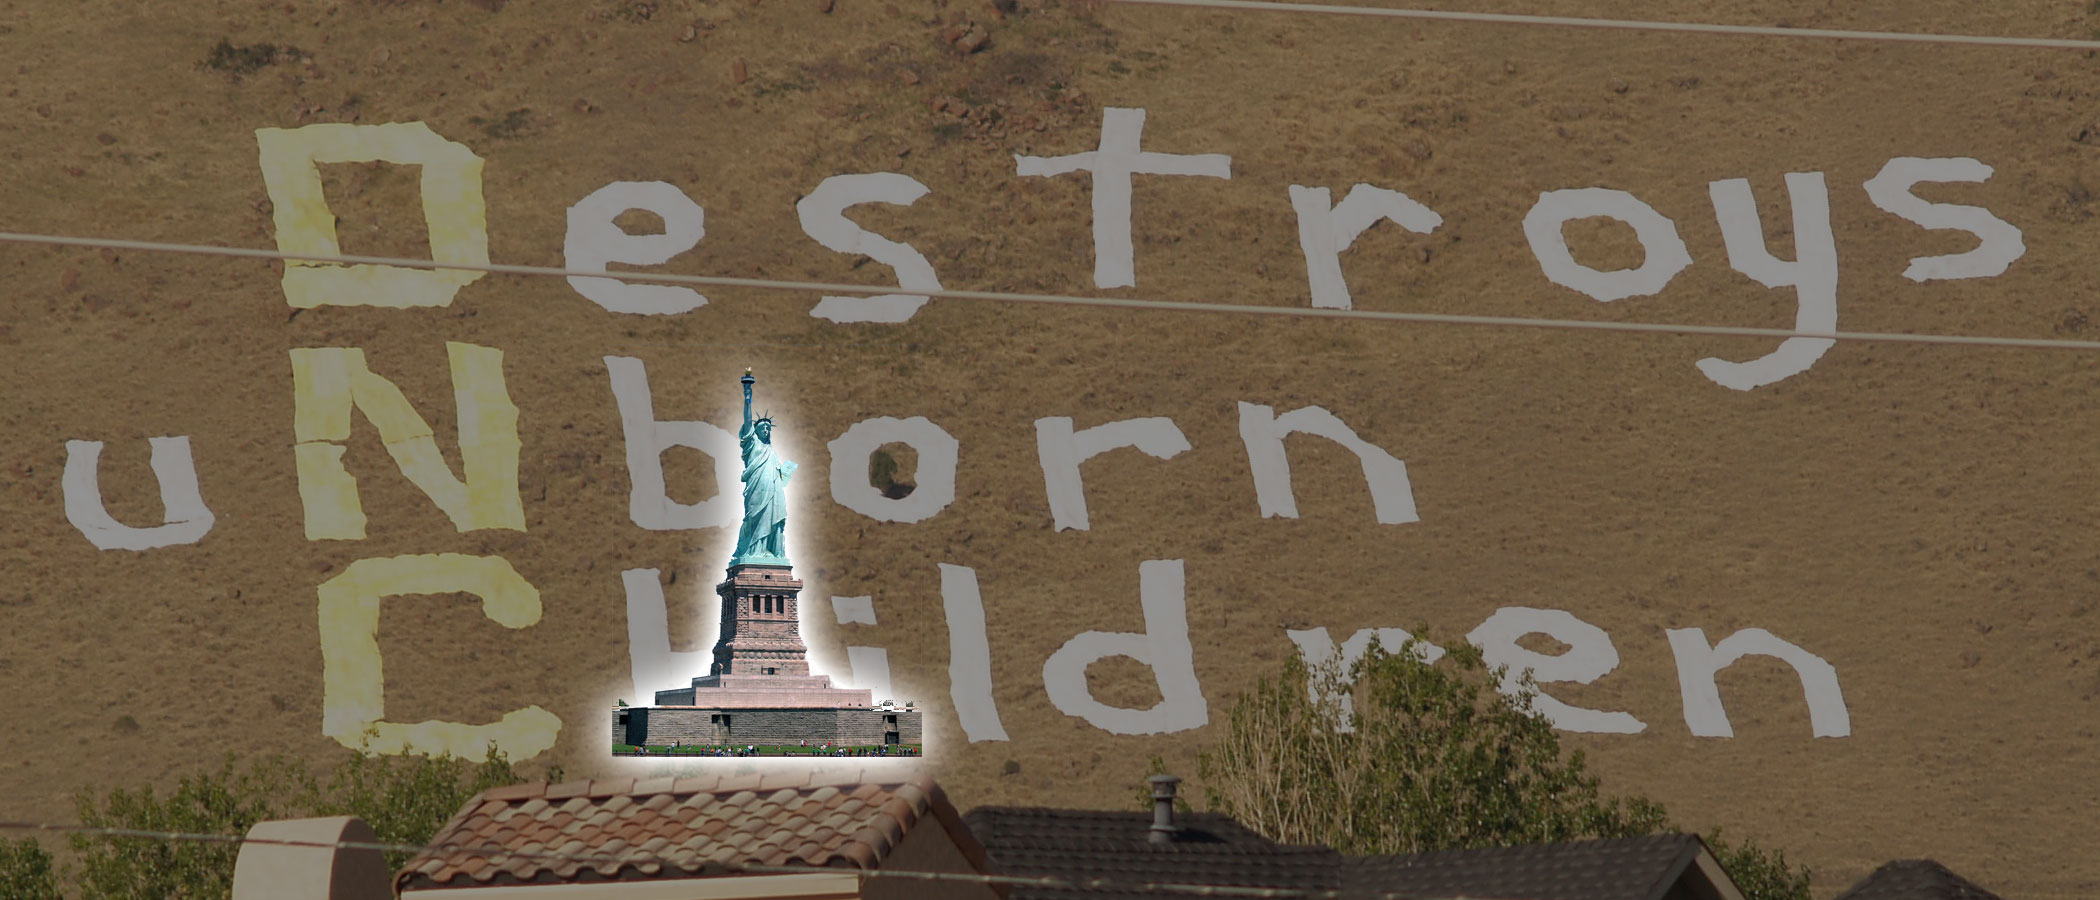 Size of world's largest protest sign by ARTL compared to the Statue of Liberty